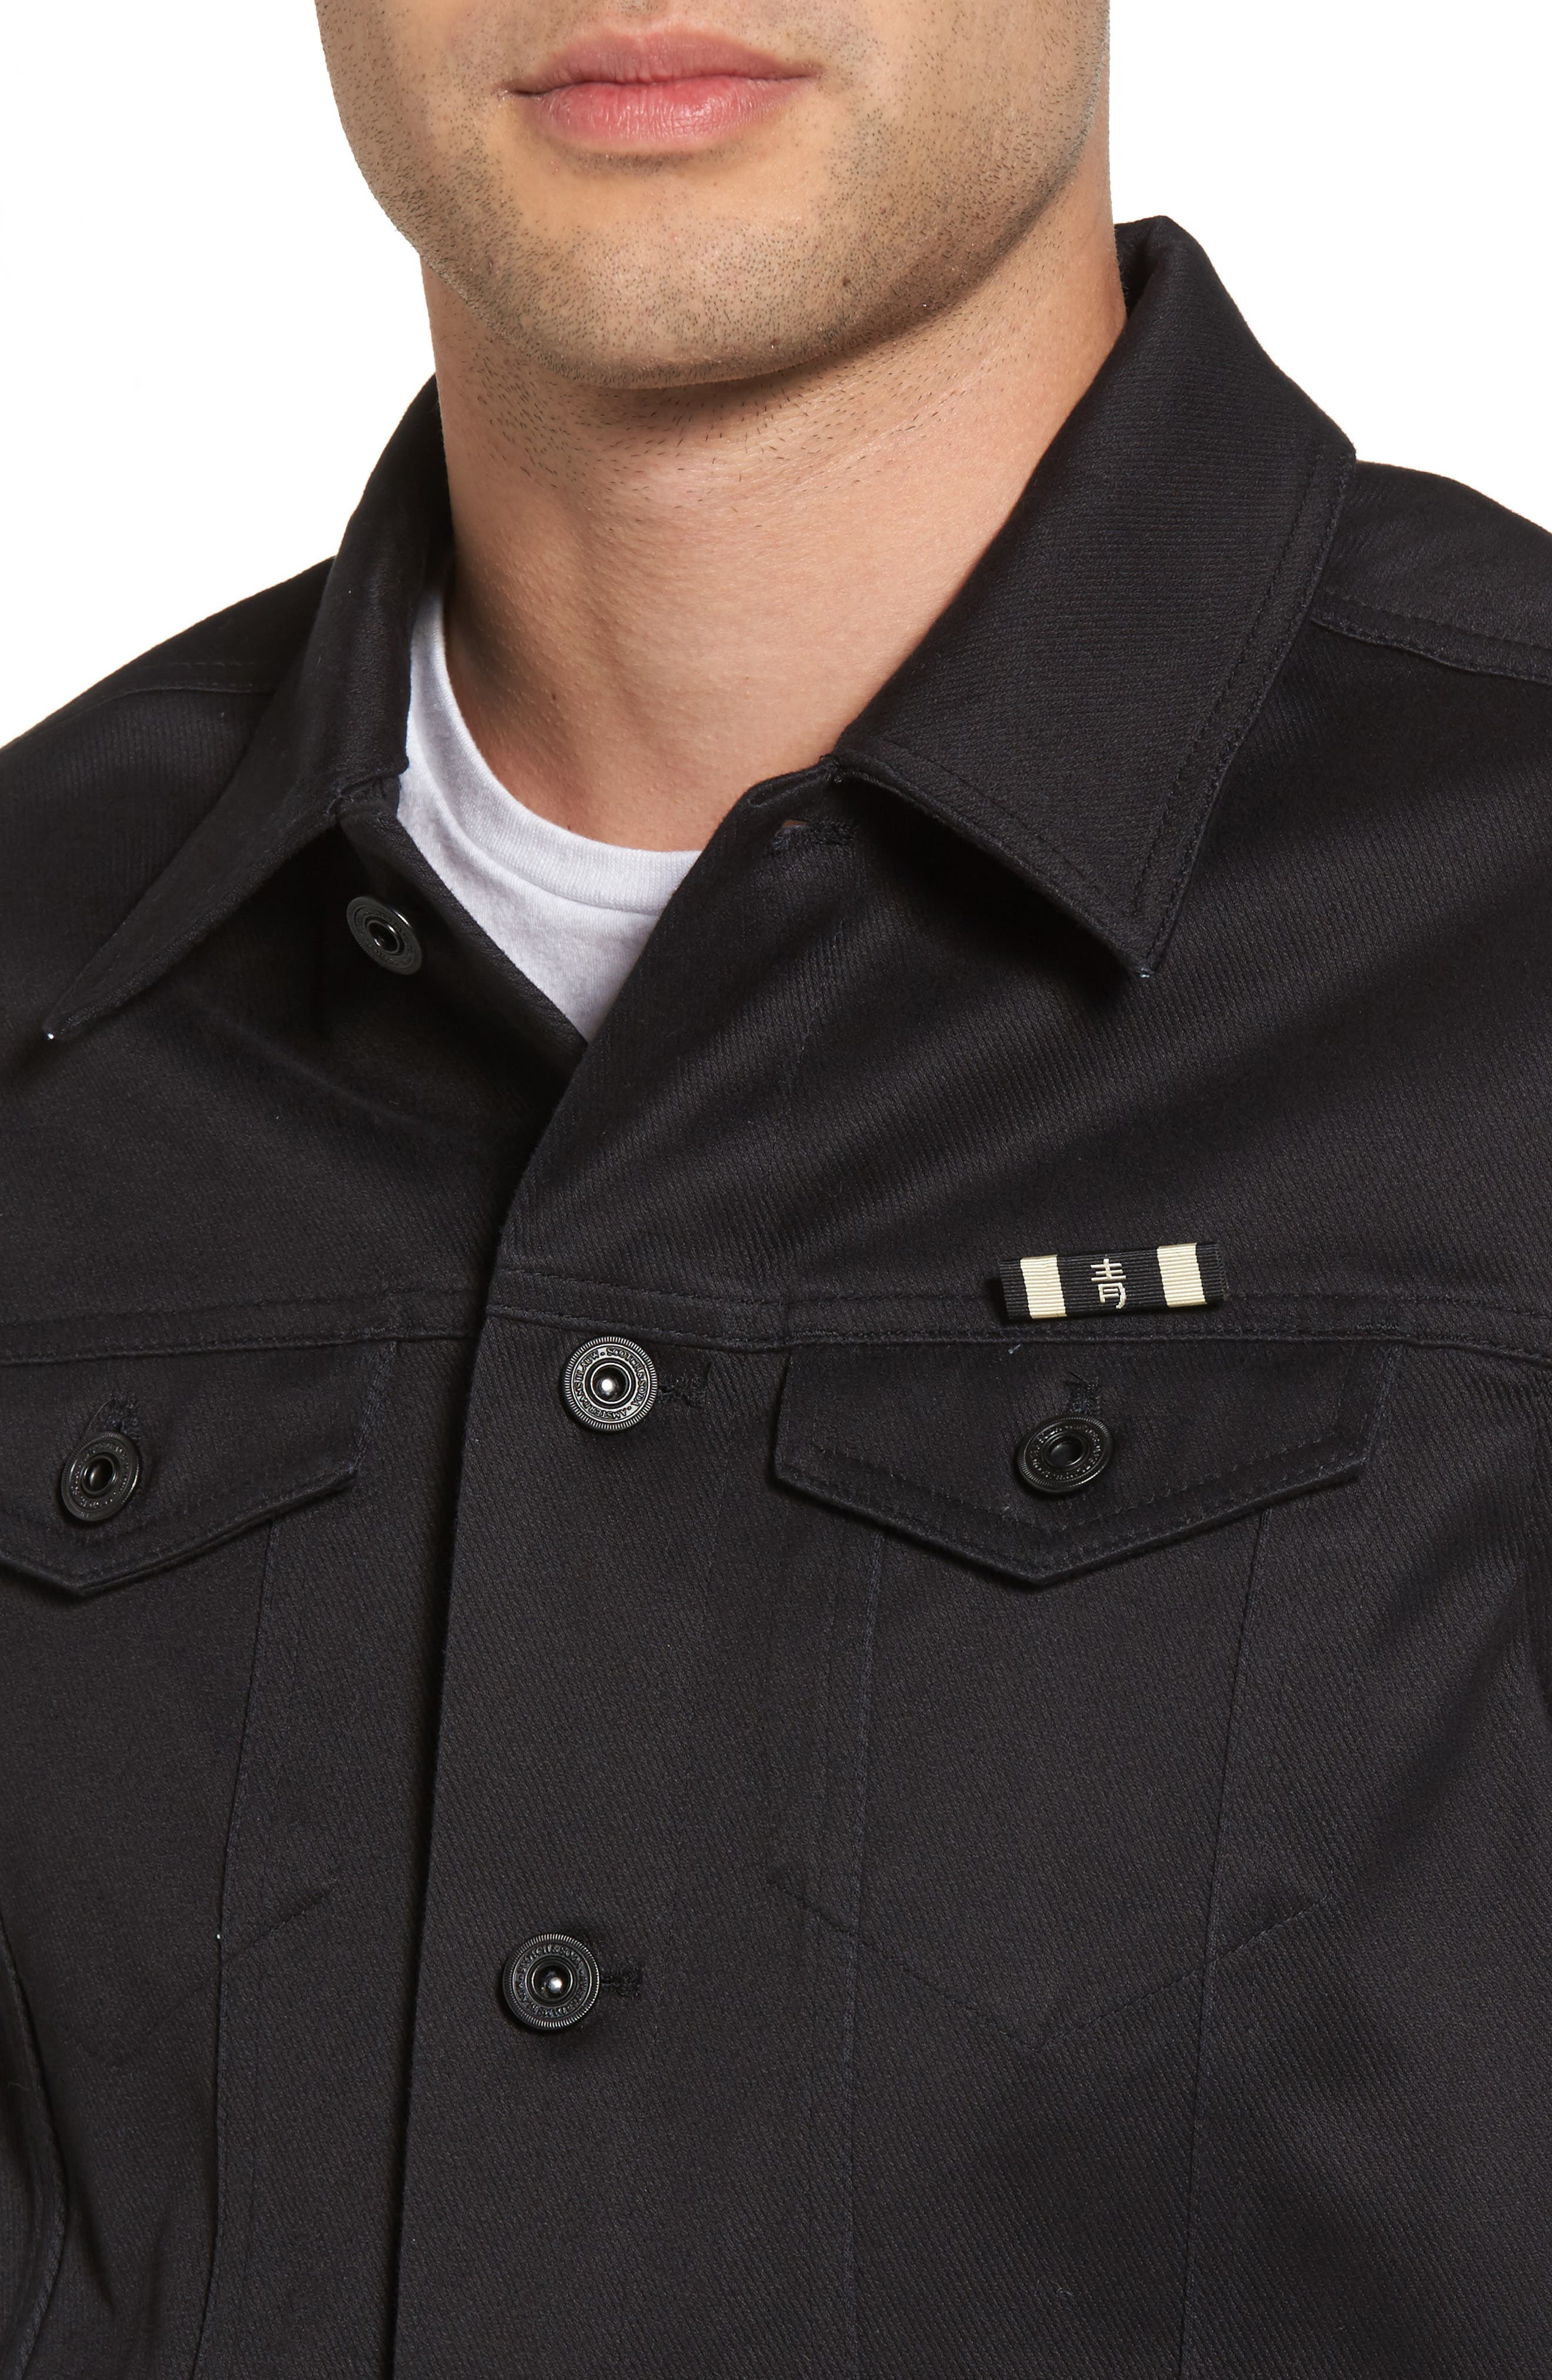 Clean Tailored Trucker Jacket,                             Alternate thumbnail 4, color,                             002